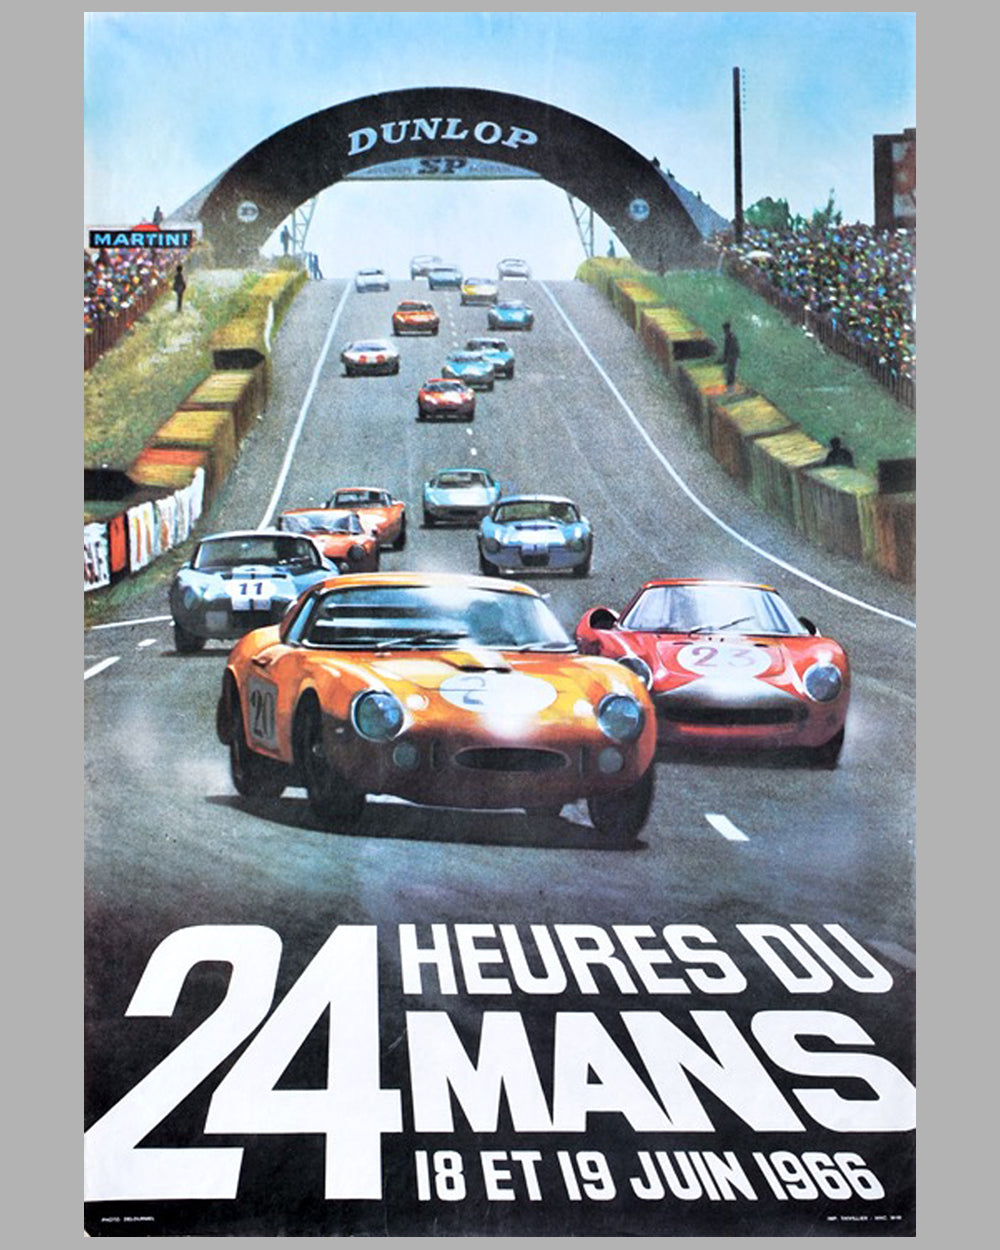 27 - 1966 - 24 hours of Le Mans original poster by Andre Delourmel